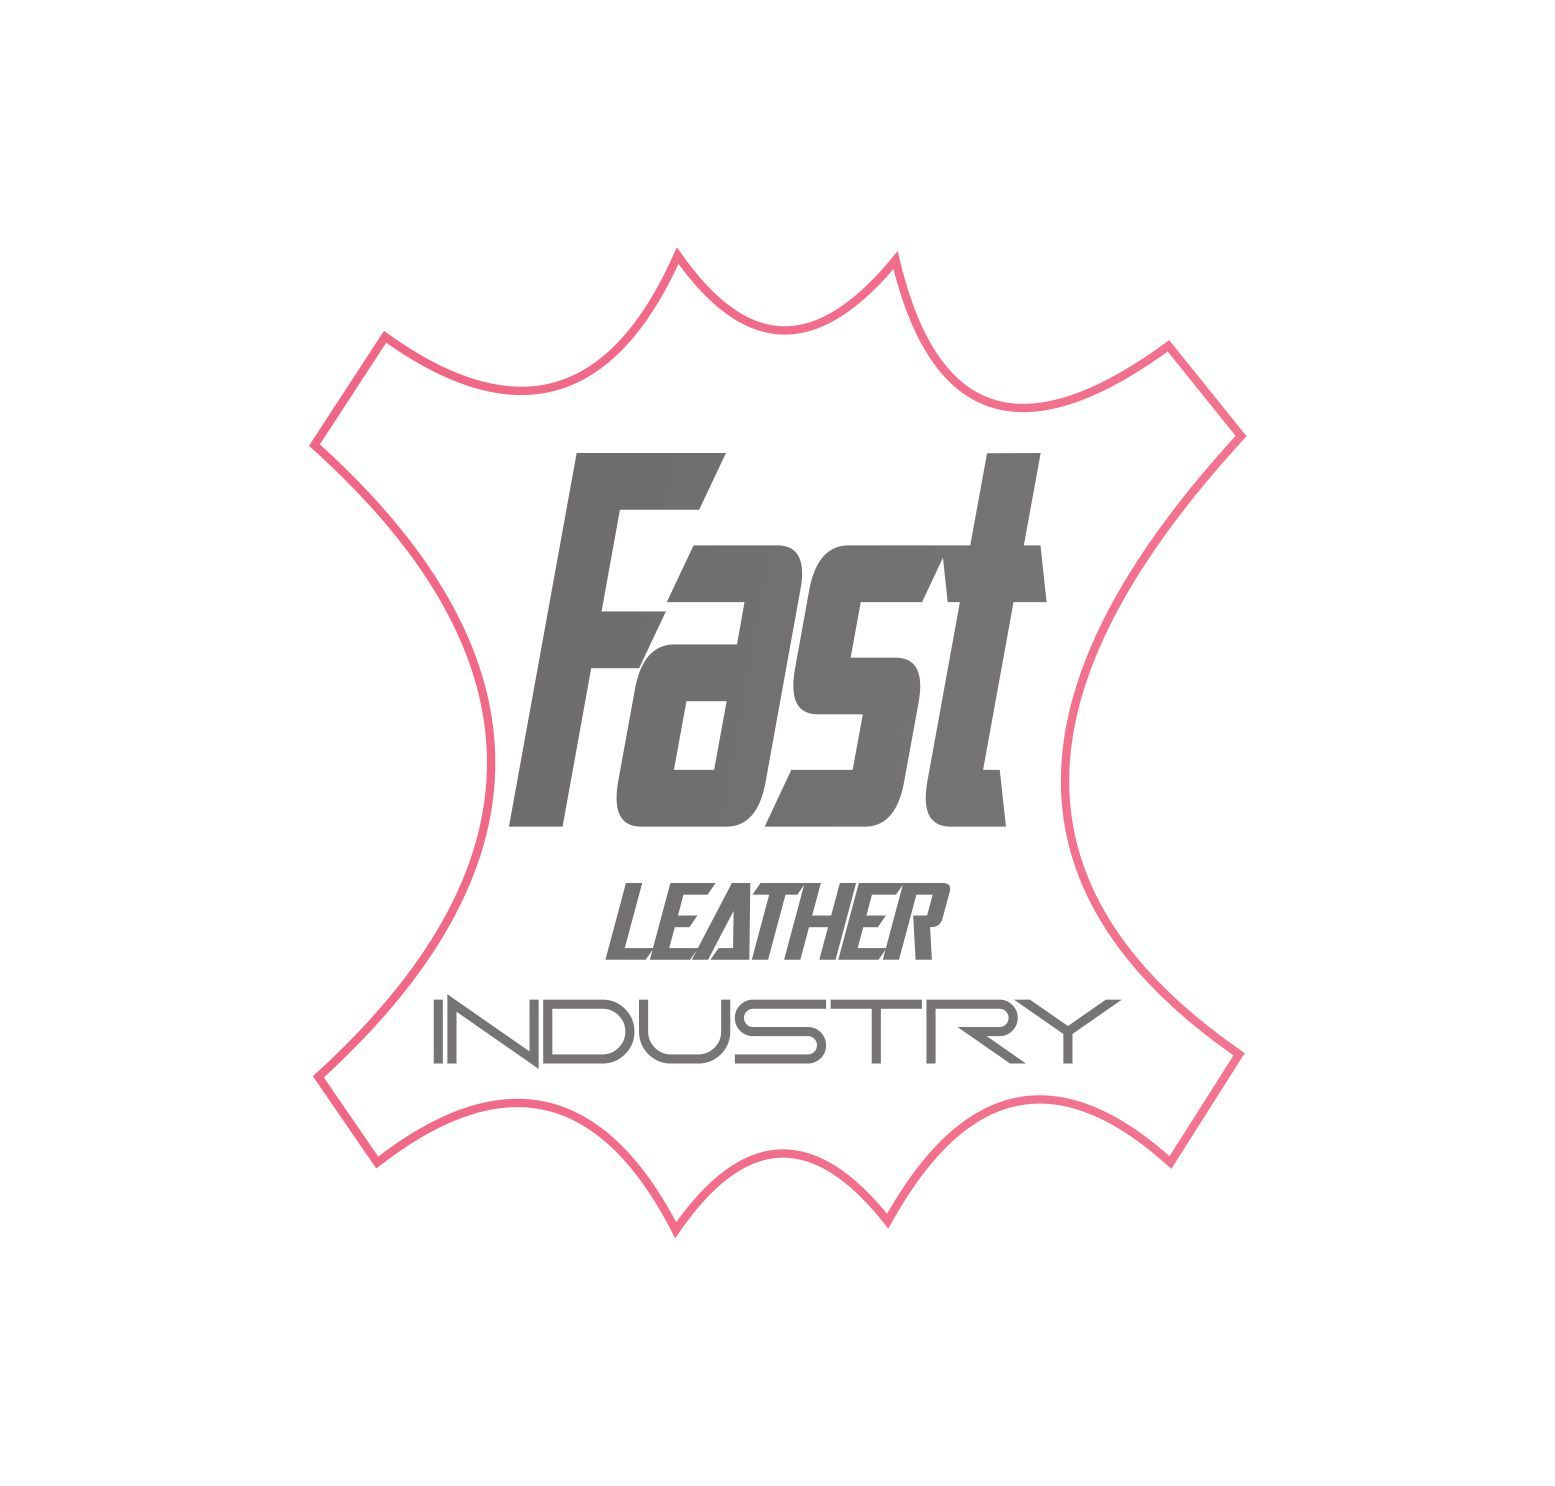 FAST LEATHER INDUSTRY